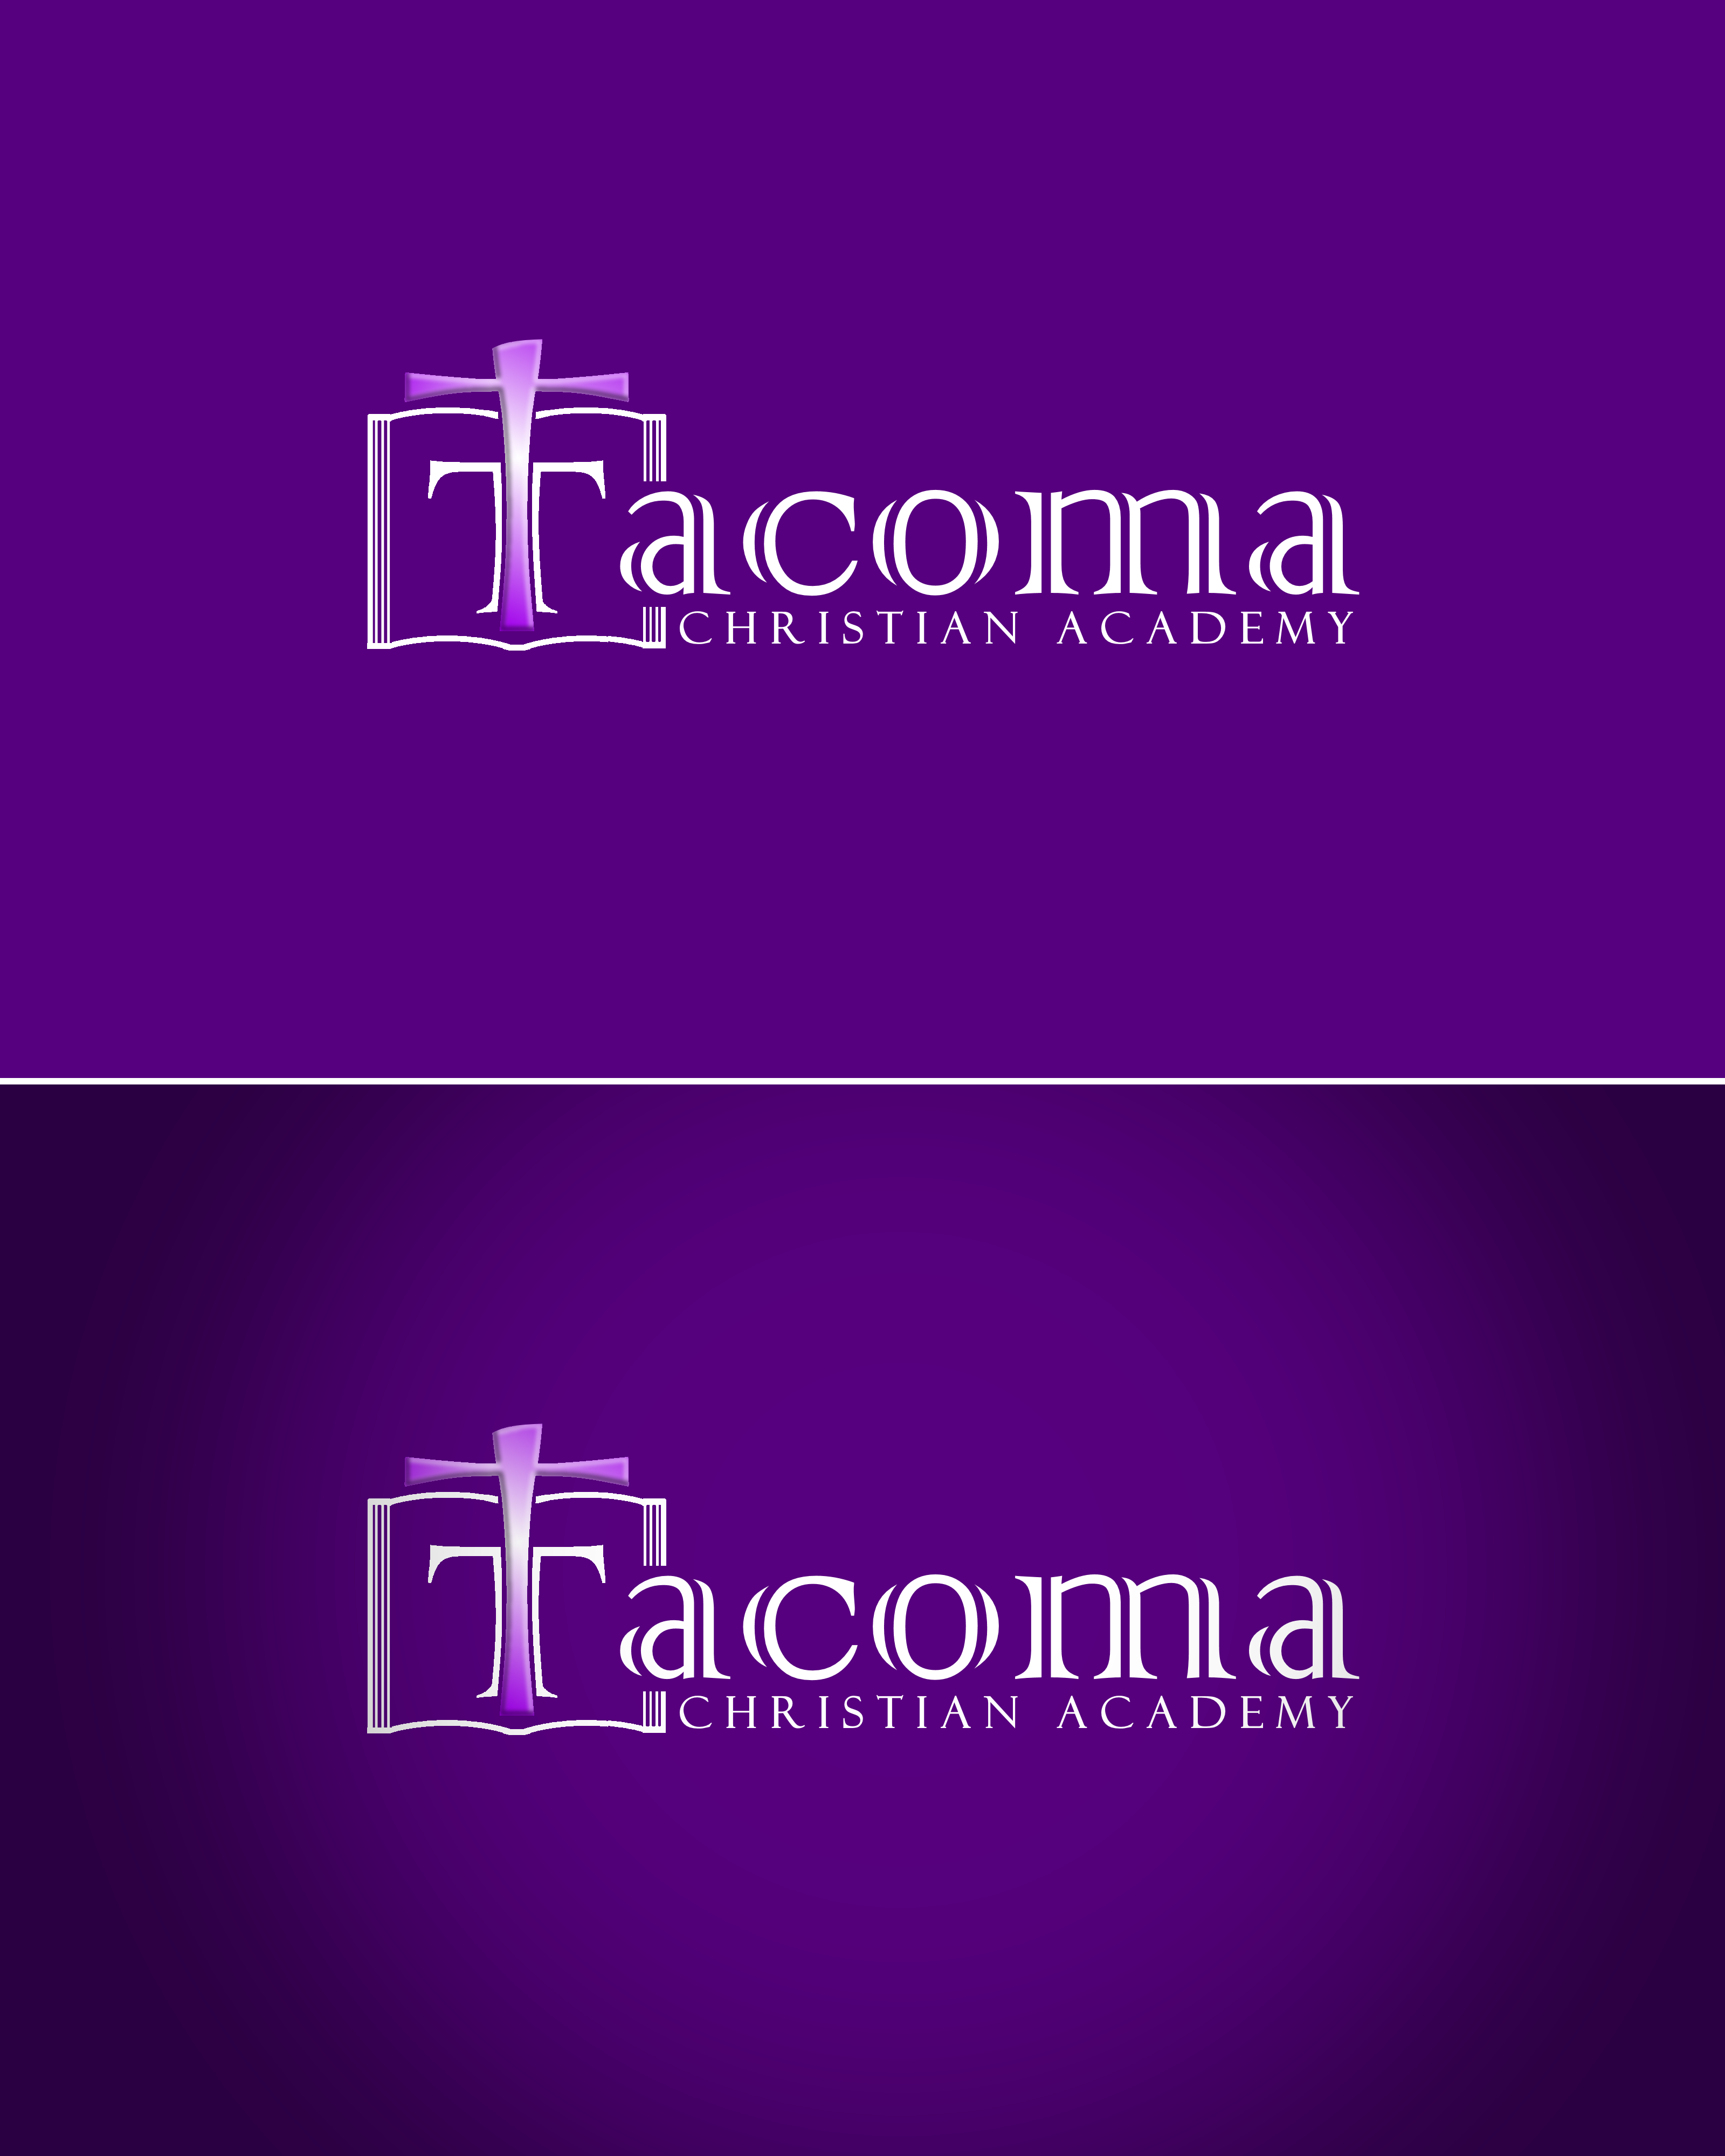 Logo Design by Roberto Bassi - Entry No. 45 in the Logo Design Contest Imaginative Logo Design for Tacoma Christian Academy.